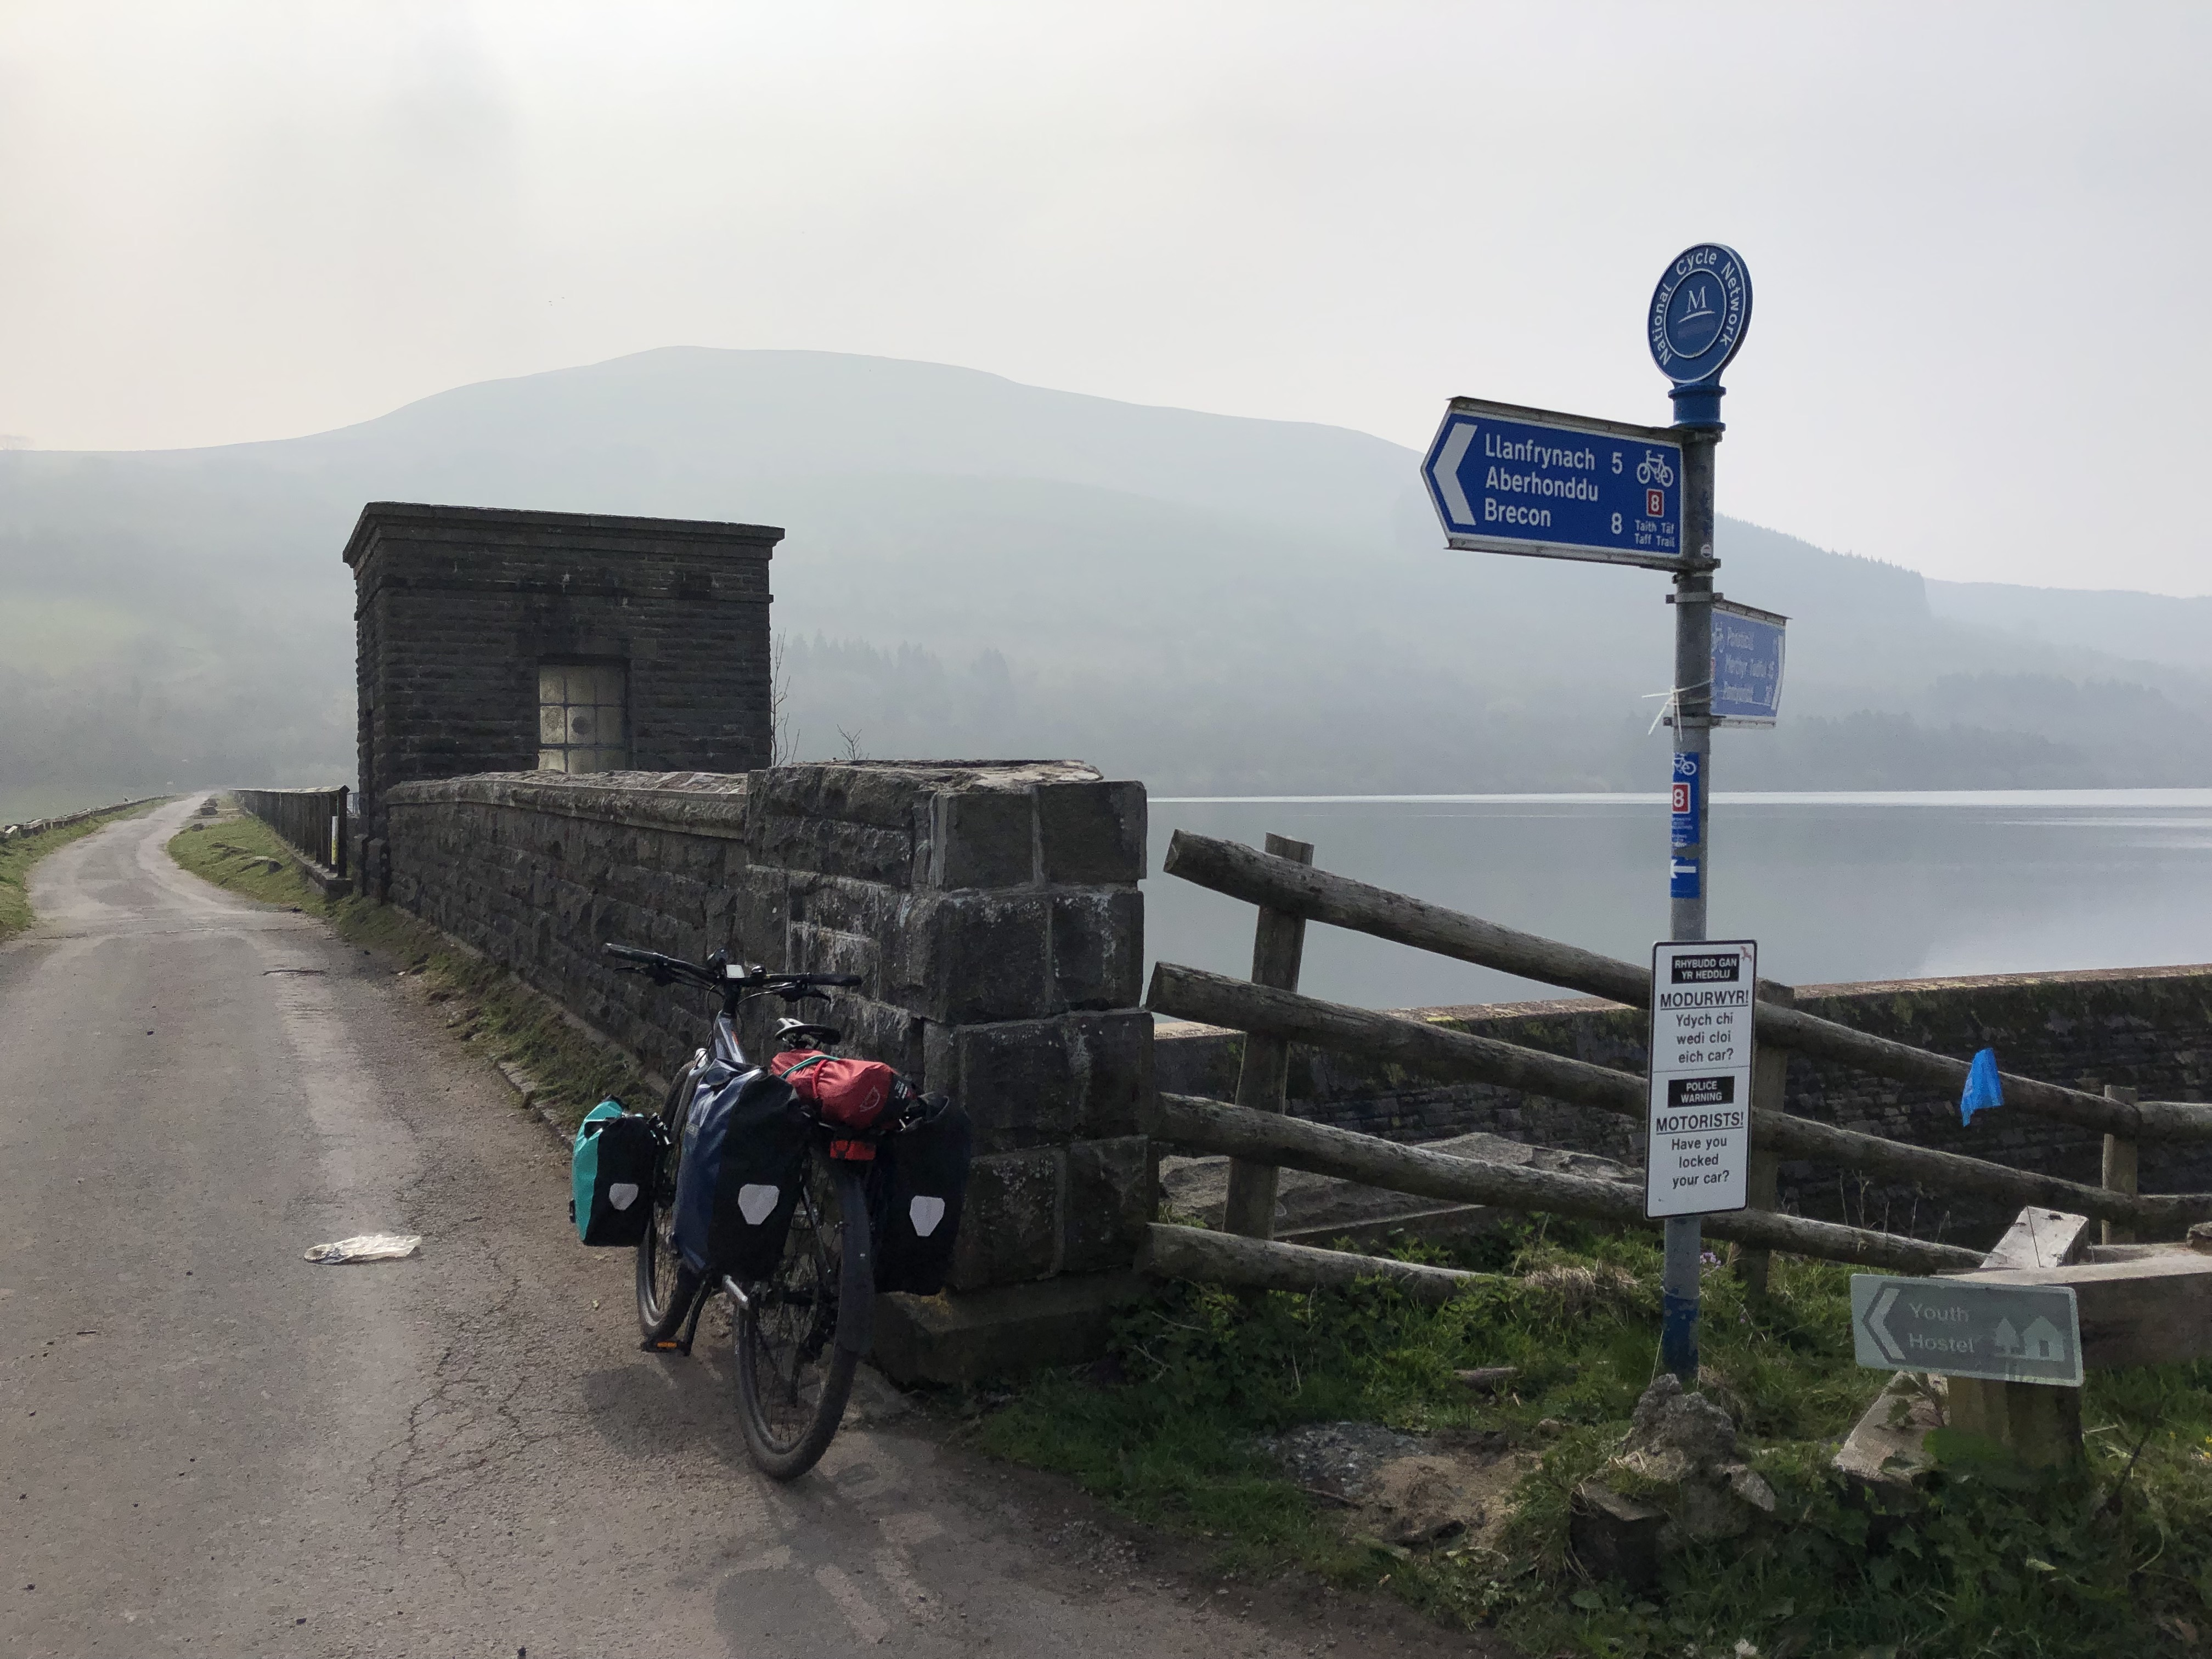 Giant ToughRoad Cardiff to Brecon Cycle touring